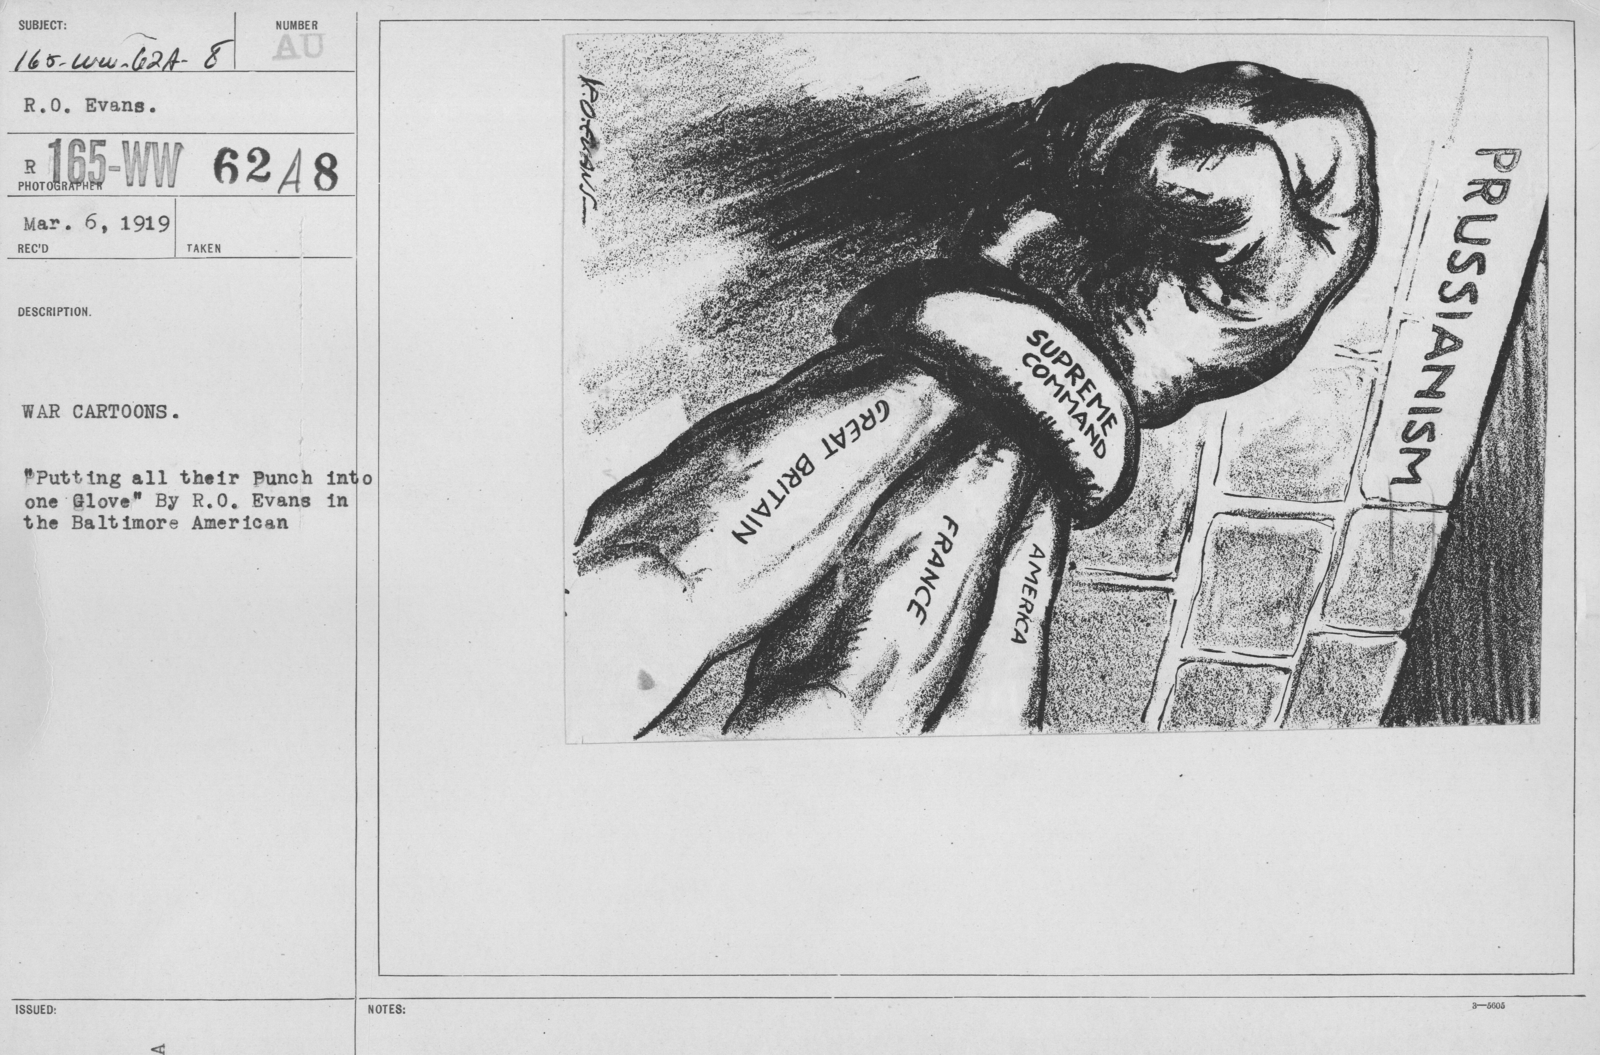 """Artists - American Artworks (Wartime Cartoons) - War Cartoons. """"Putting all their Punch into one Glove"""" by R.O. Evans in the Baltimore American"""